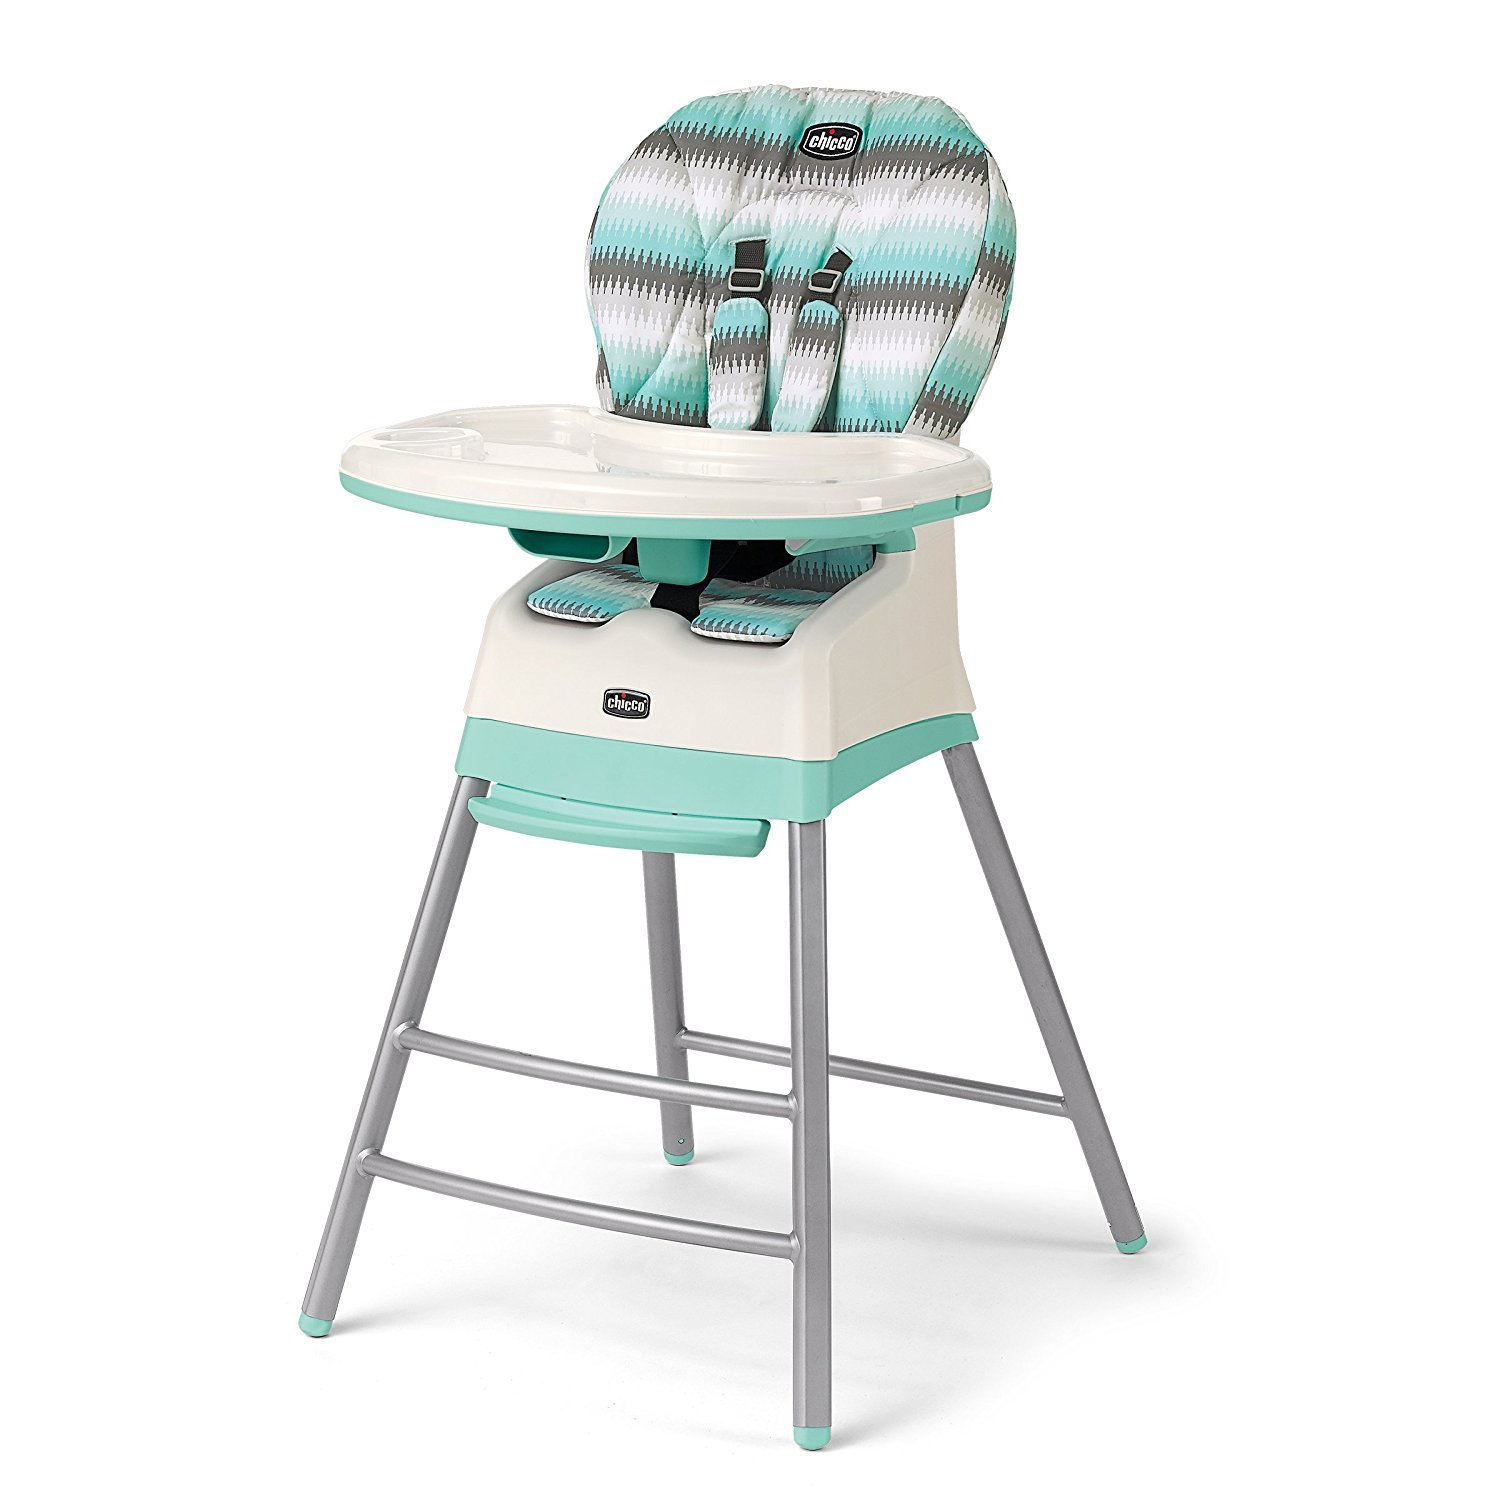 portable high chair chicco antique wicker chairs stack 3 in 1 multi stage adjustable highchair booster modmint walmart com